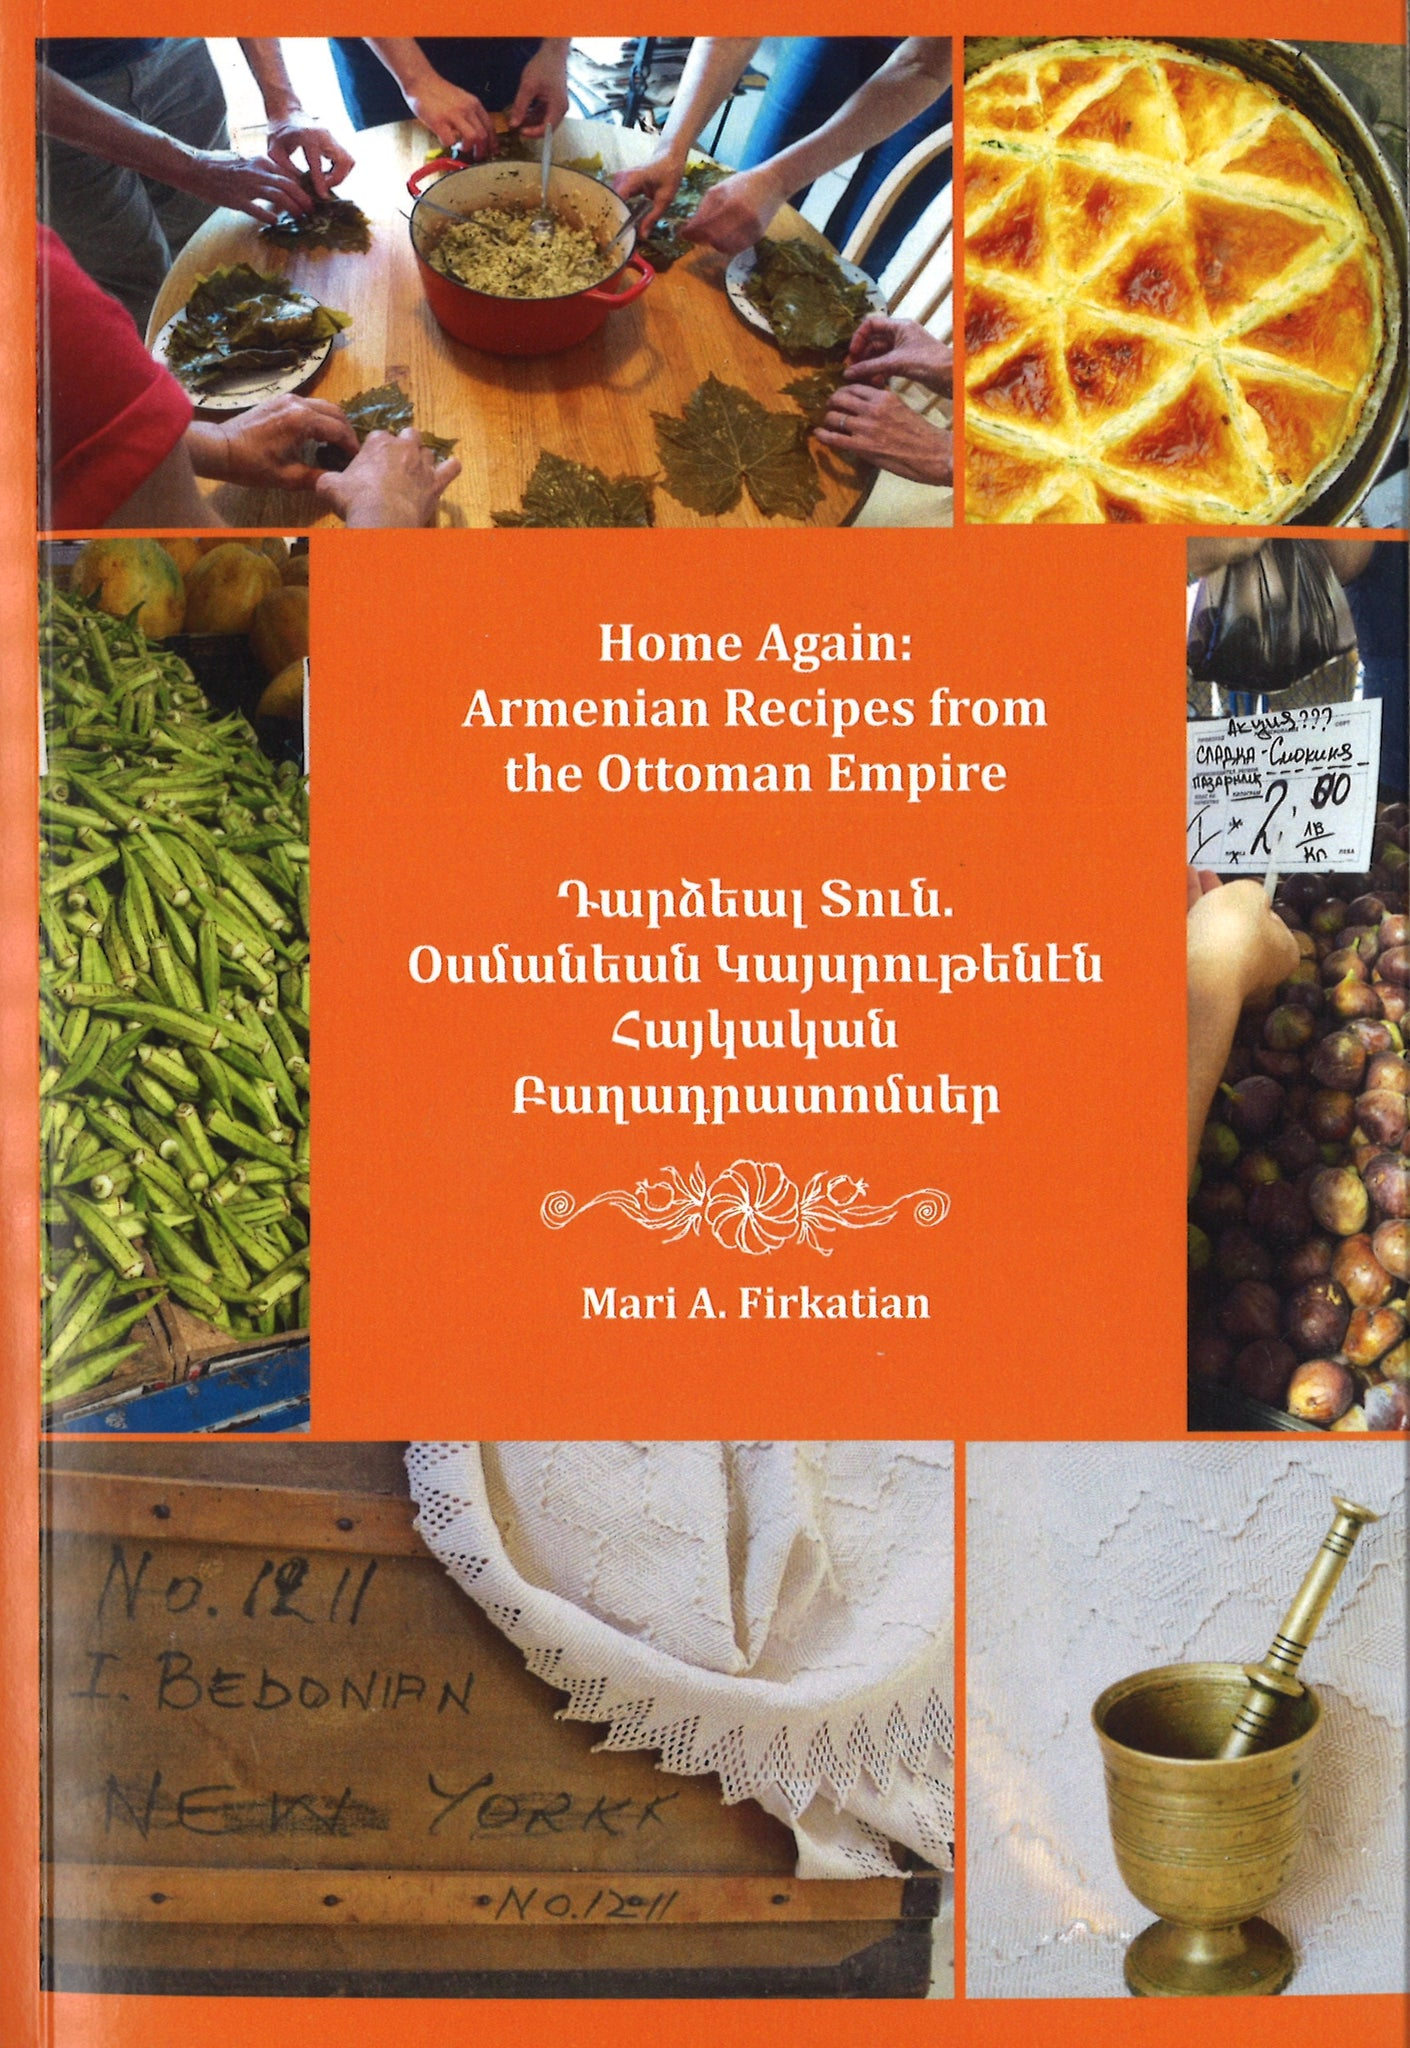 HOME AGAIN: Armenian Recipes from the Ottoman Empire